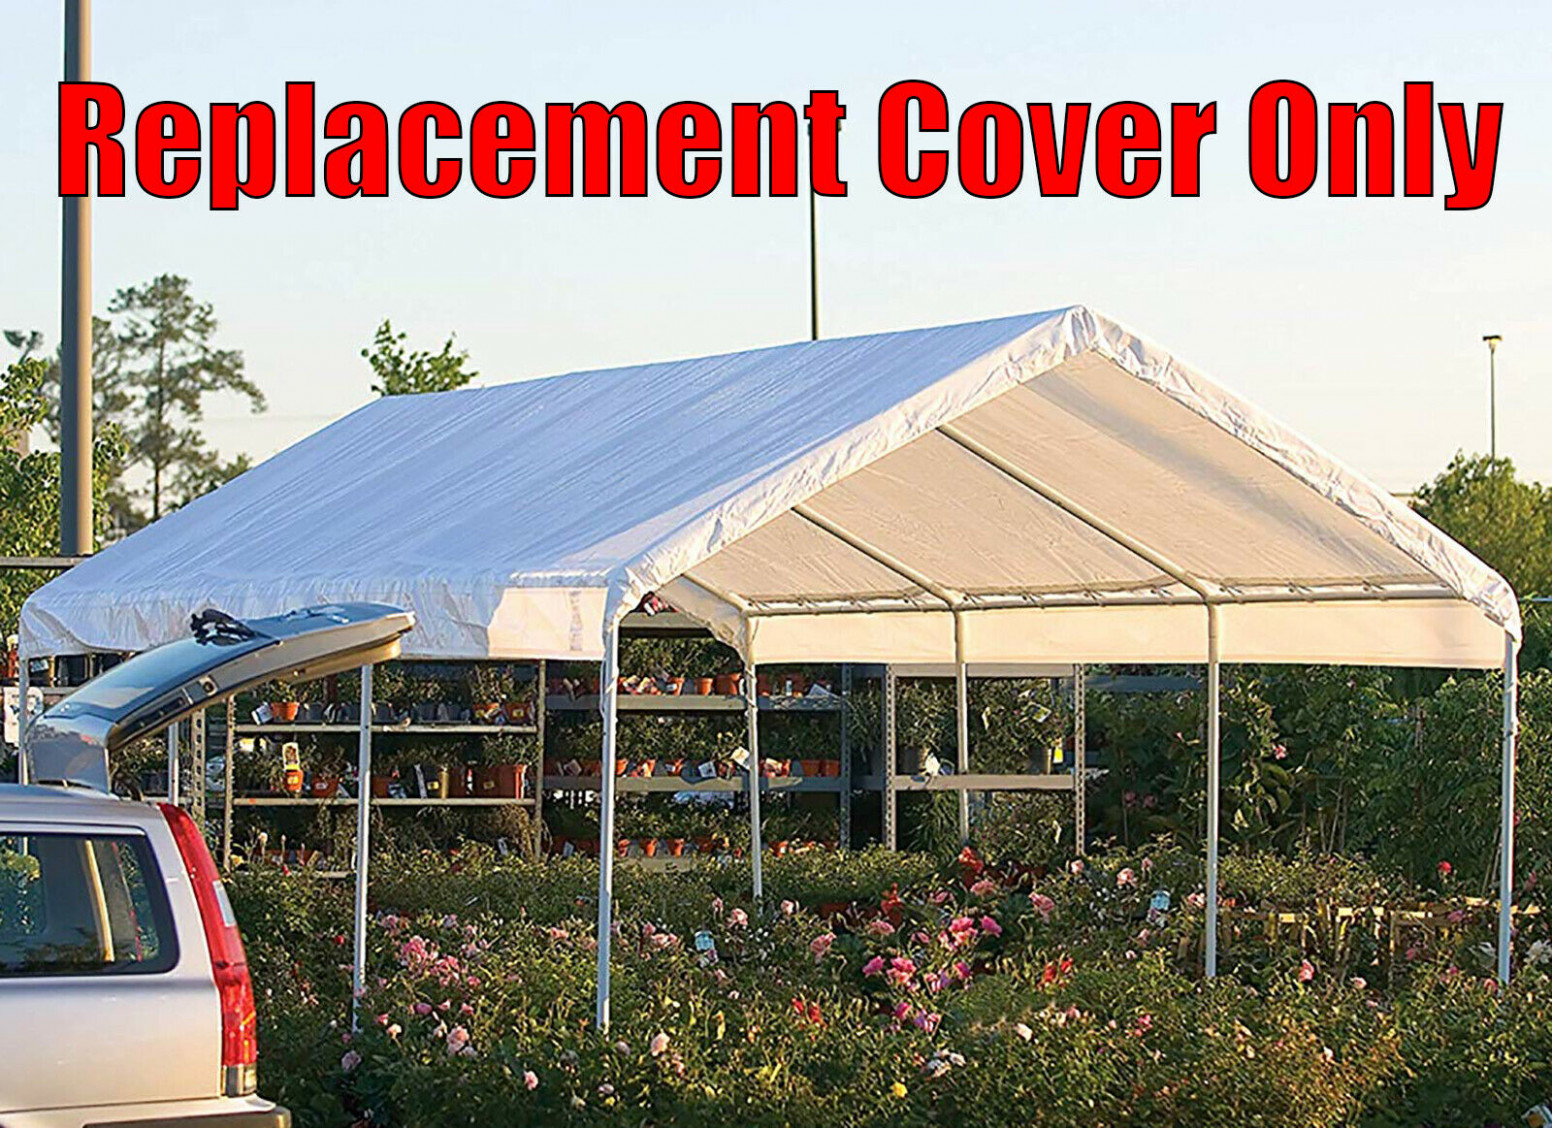 7 X 7 Feet Roof Top Cover White Tarp For Replacement Outdoor Canopy Heavy Duty Carport Canopy Replacement Tarps